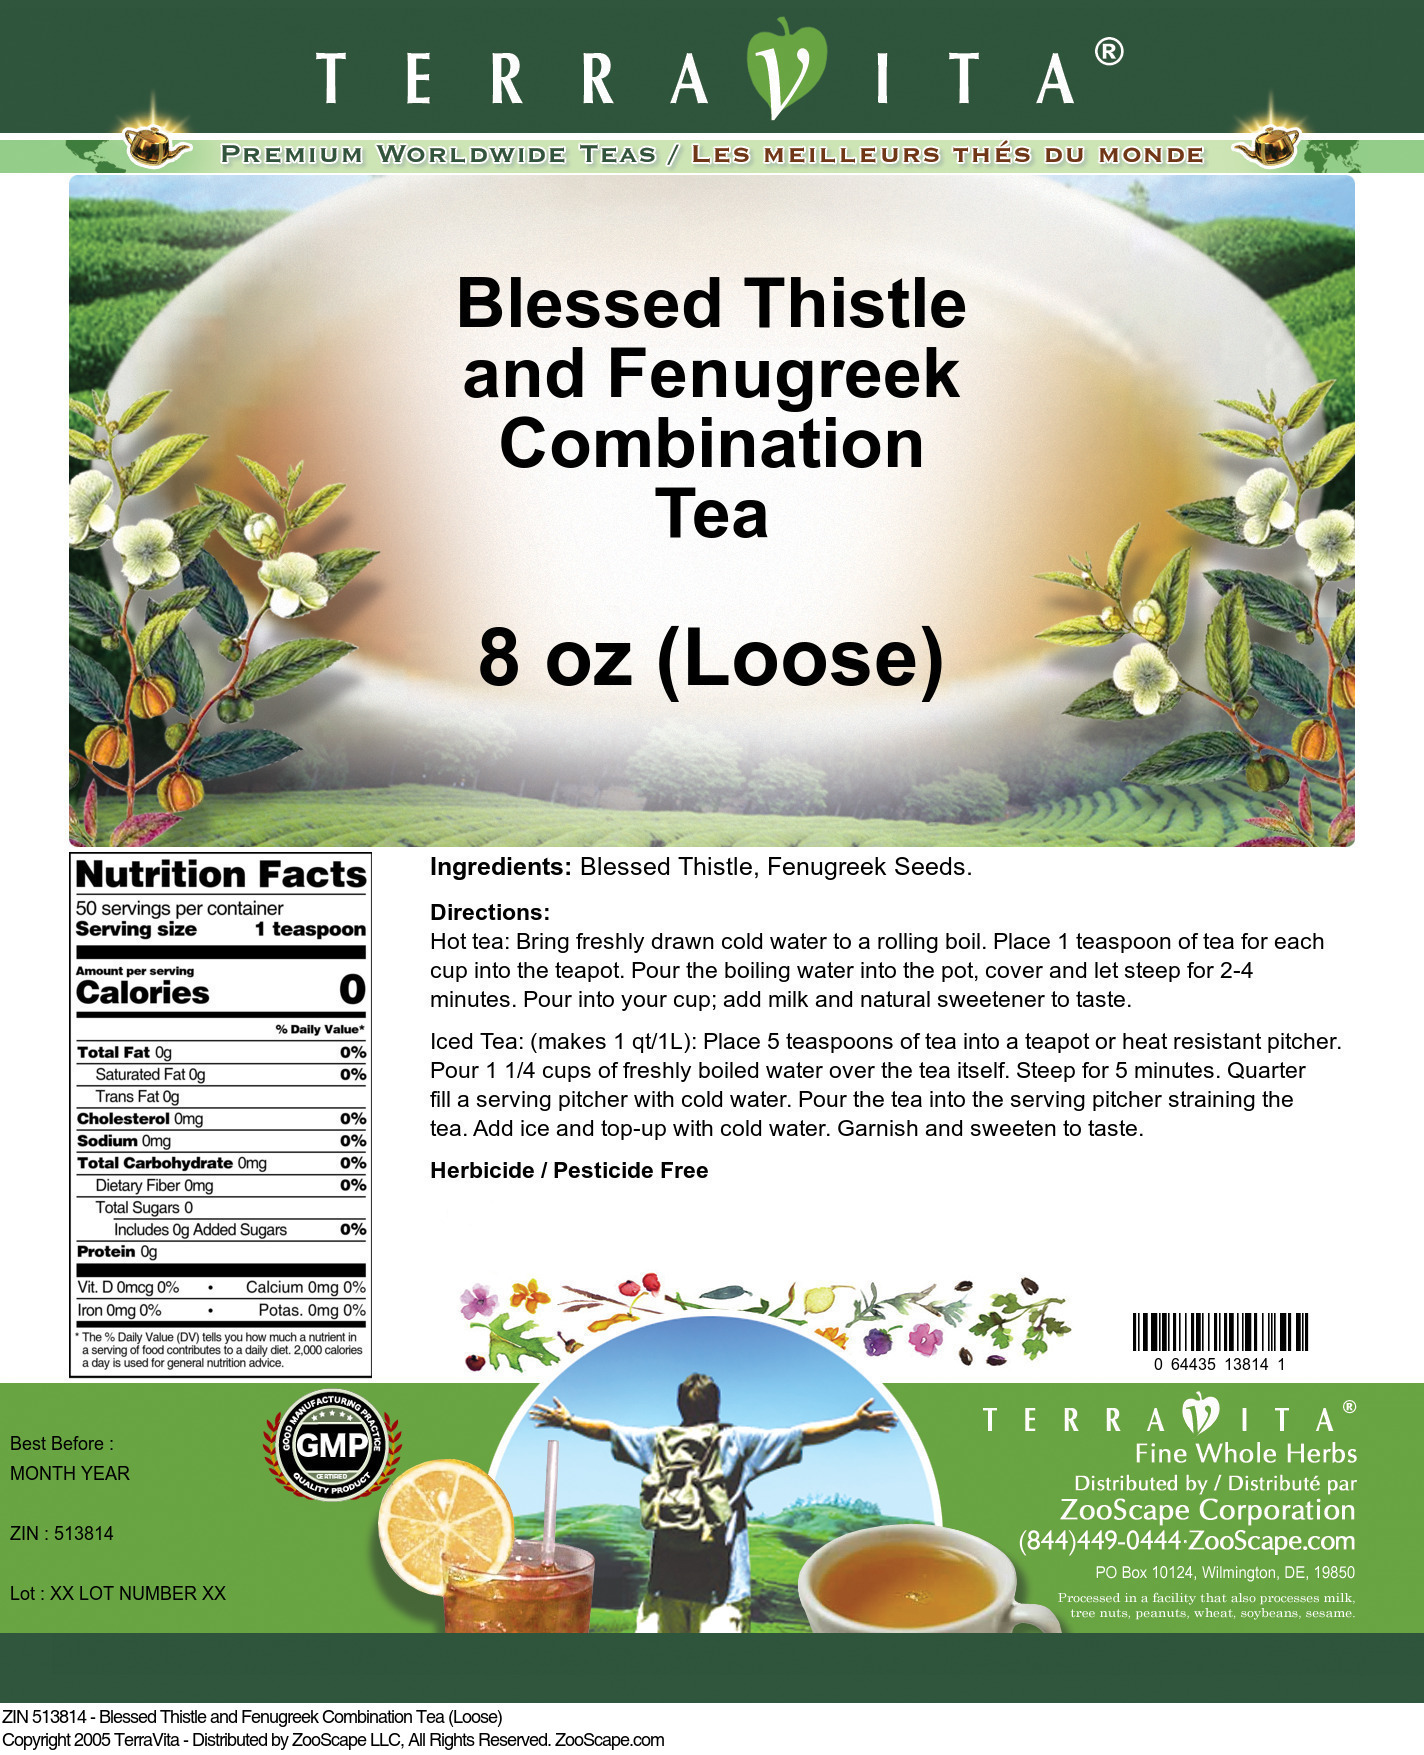 Blessed Thistle and Fenugreek Combination Tea (Loose)